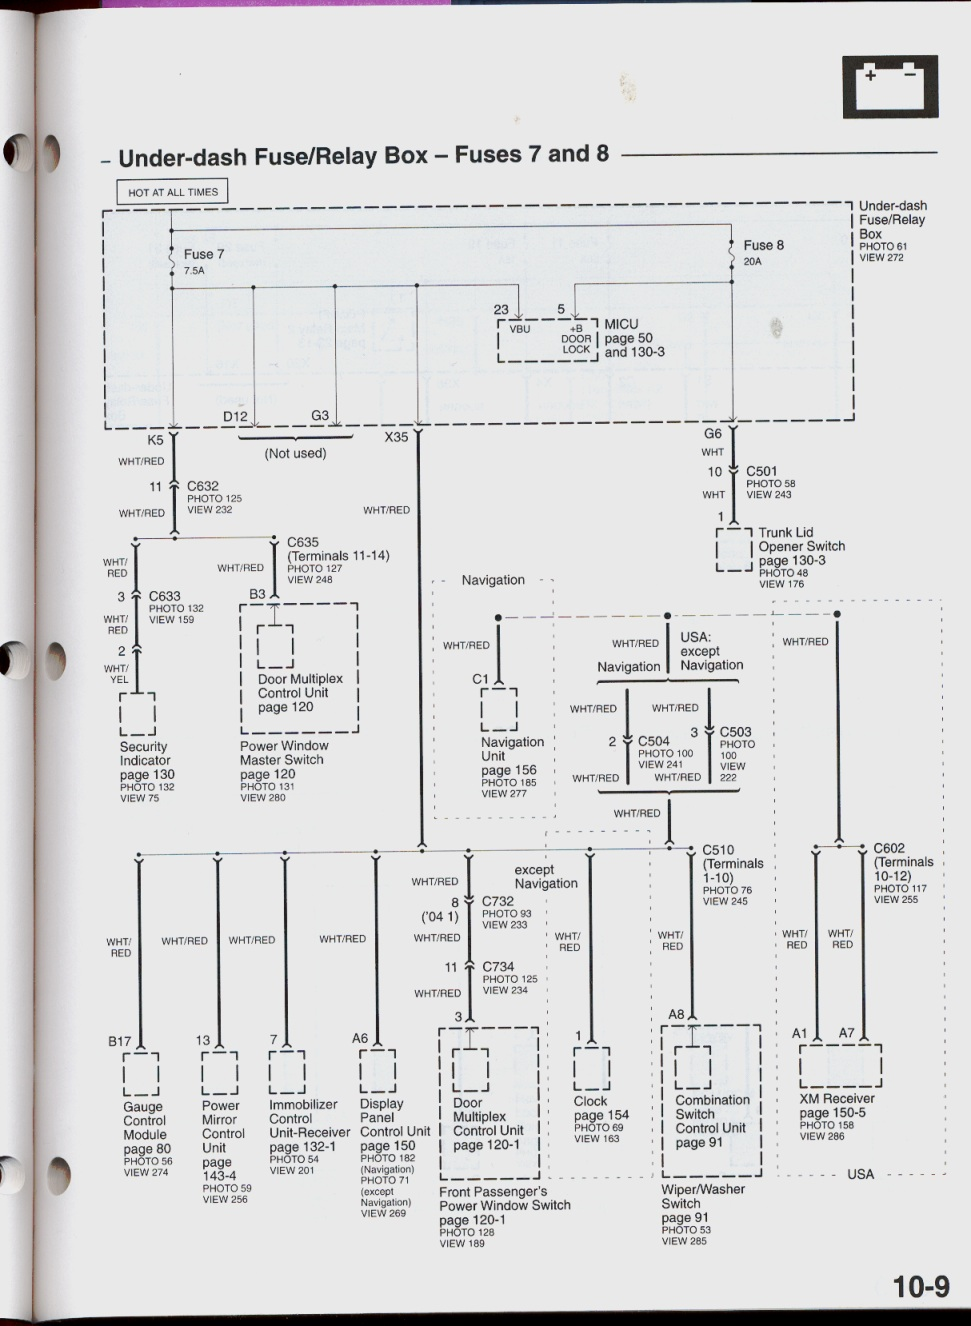 Outstanding Vw Lupo Wiring Diagram Model - Wiring Diagram Ideas ...